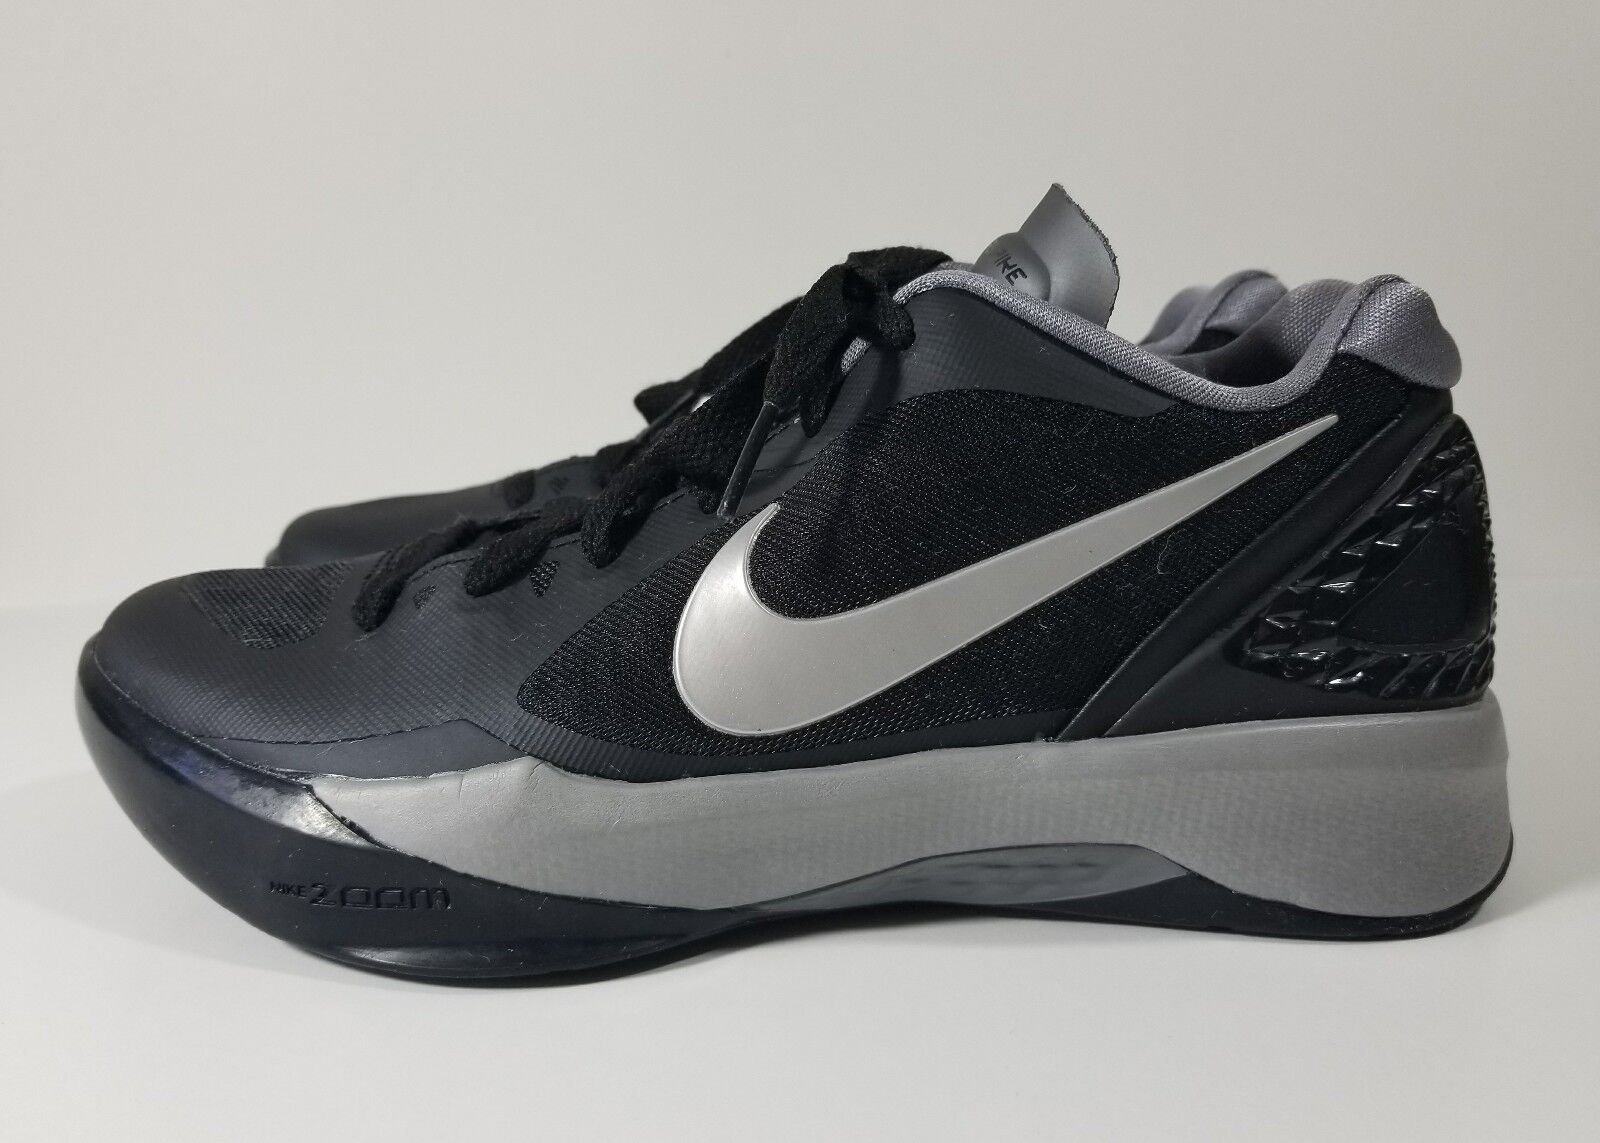 Nike Volley Zoom Zoom Zoom Hyperstrike Womens Volleyball Shoes Black Gray Size 5.5 728b7e